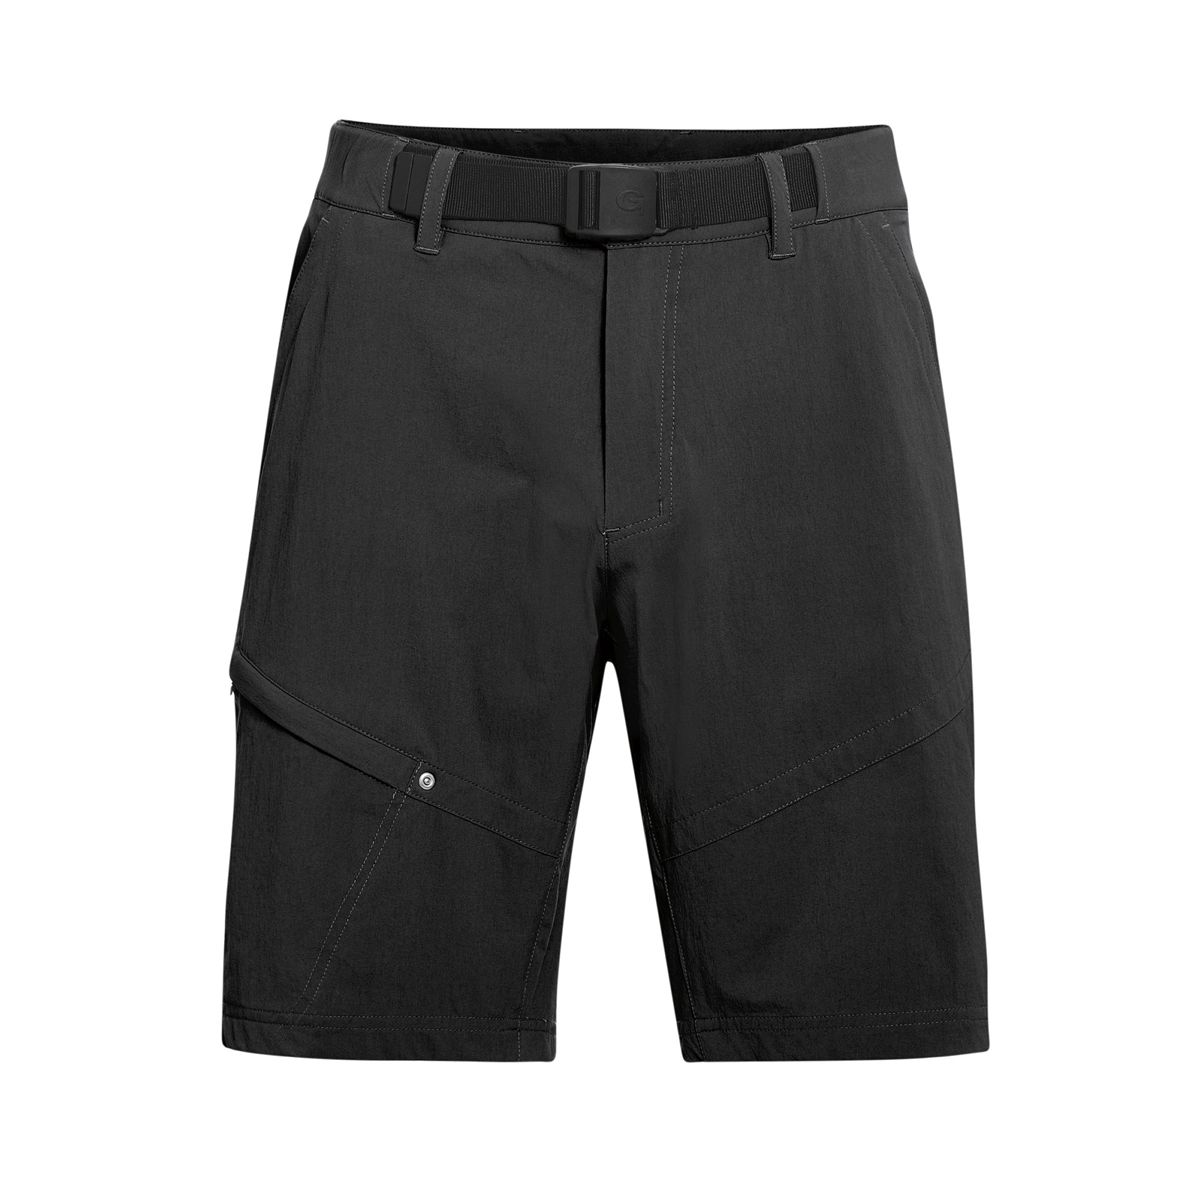 ARICO cycling shorts